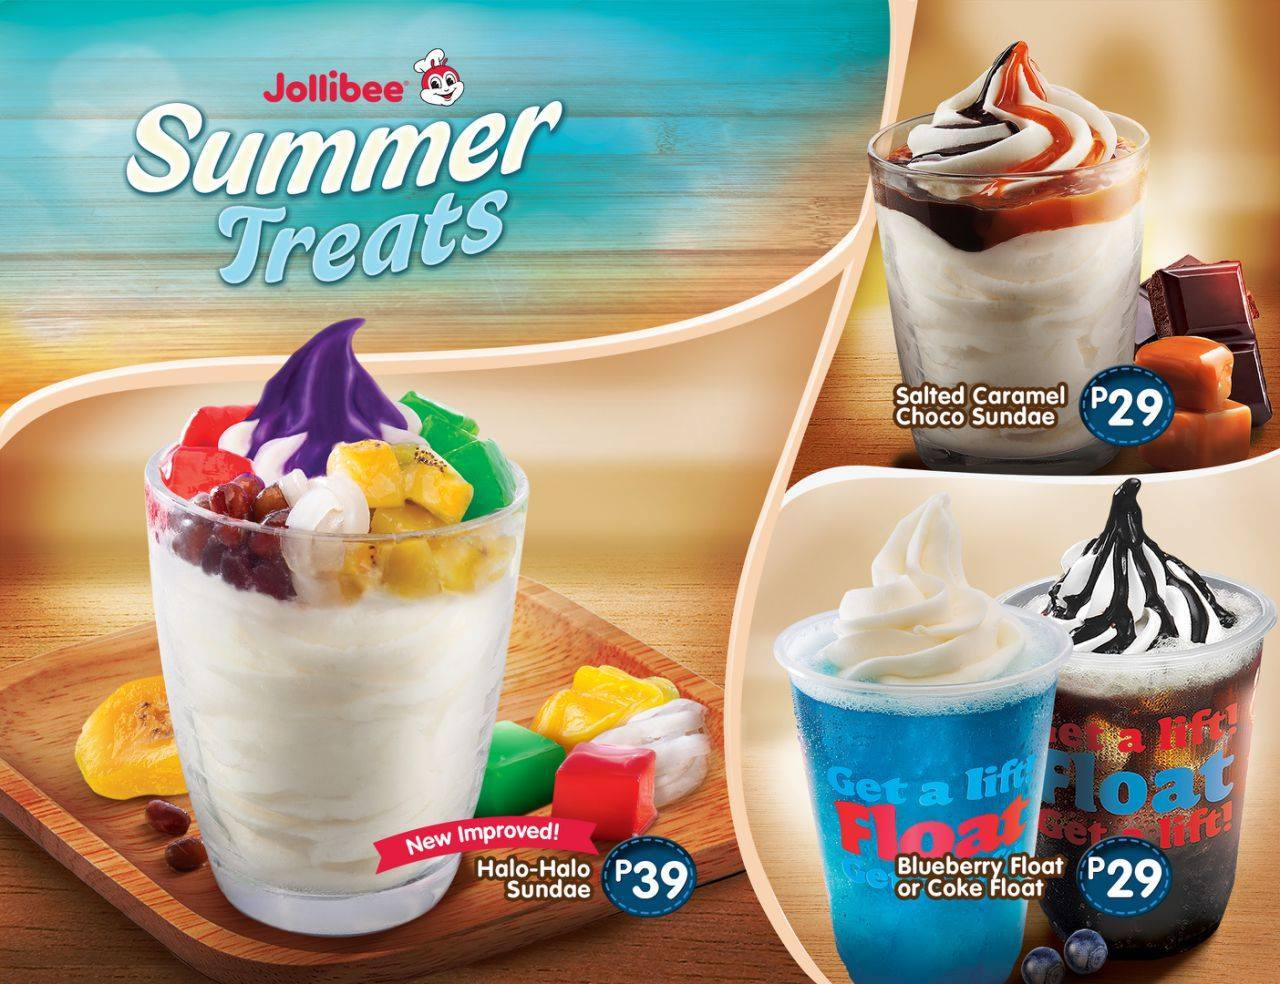 JollibeeSummerTreats Now Available Beat The Summer Heat With These Unbeatable Desserts